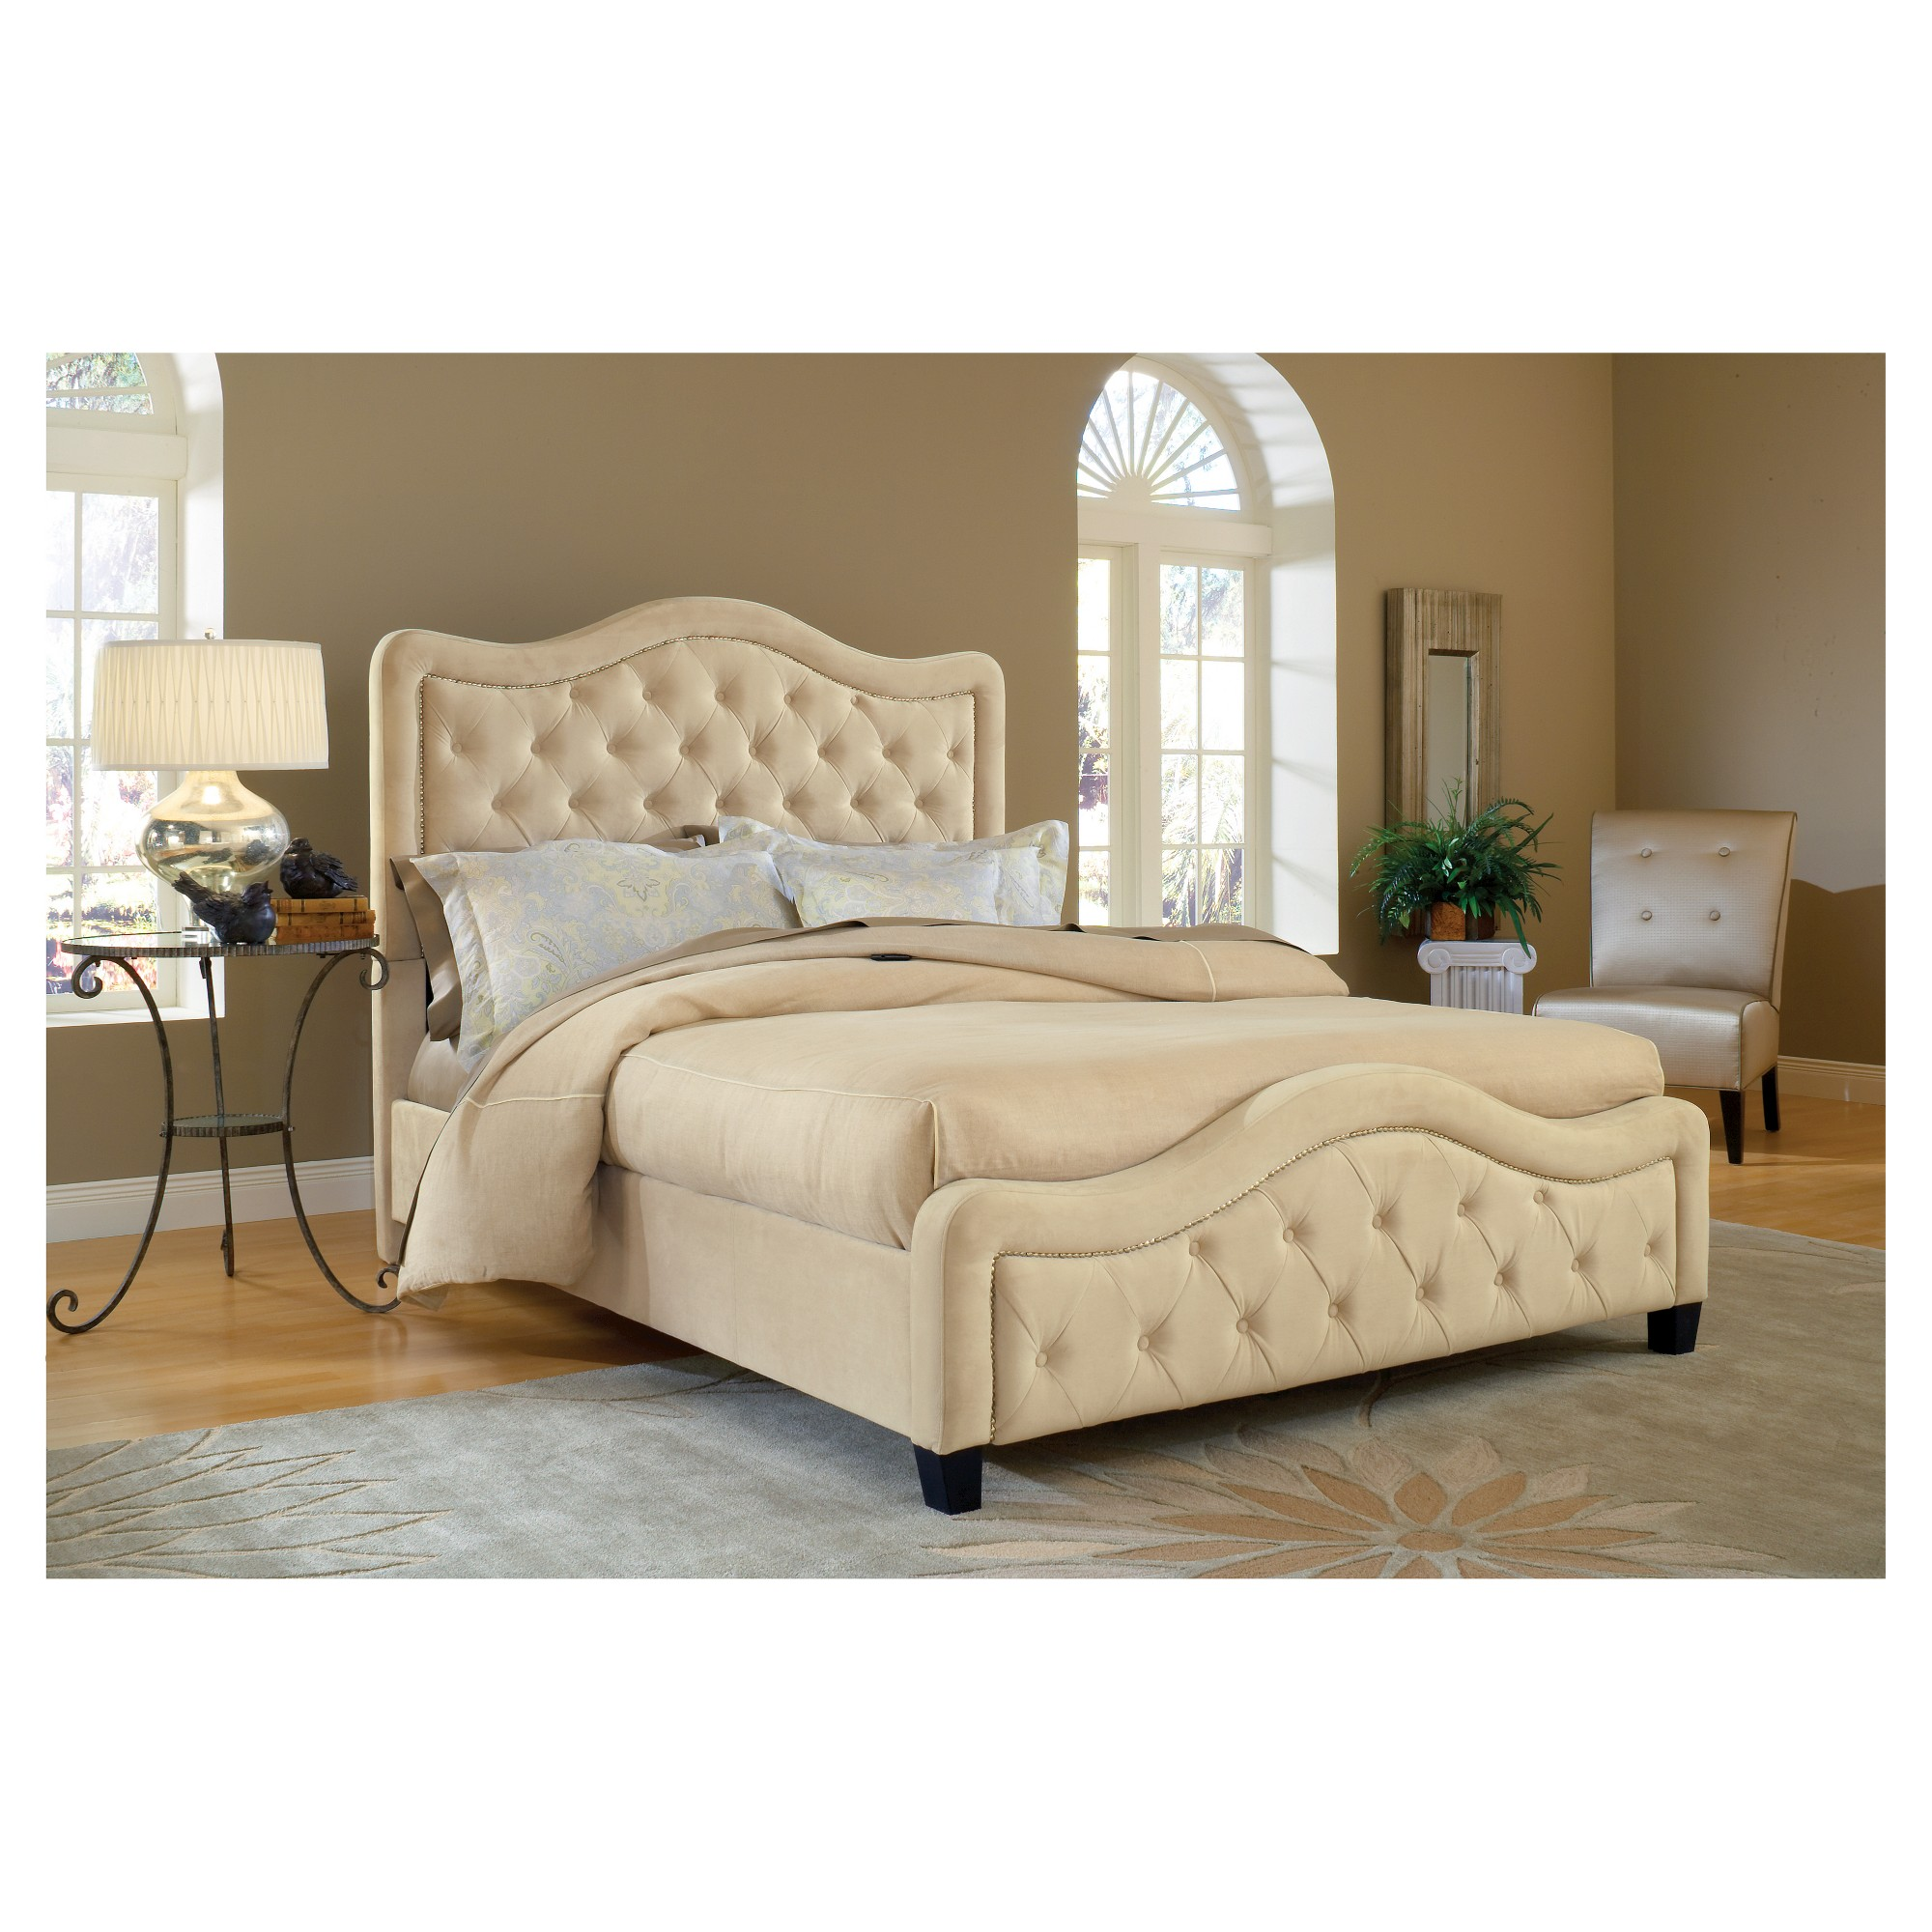 Trieste Bed - Queen - with Rails - Buckwheat - Hillsdale Furniture